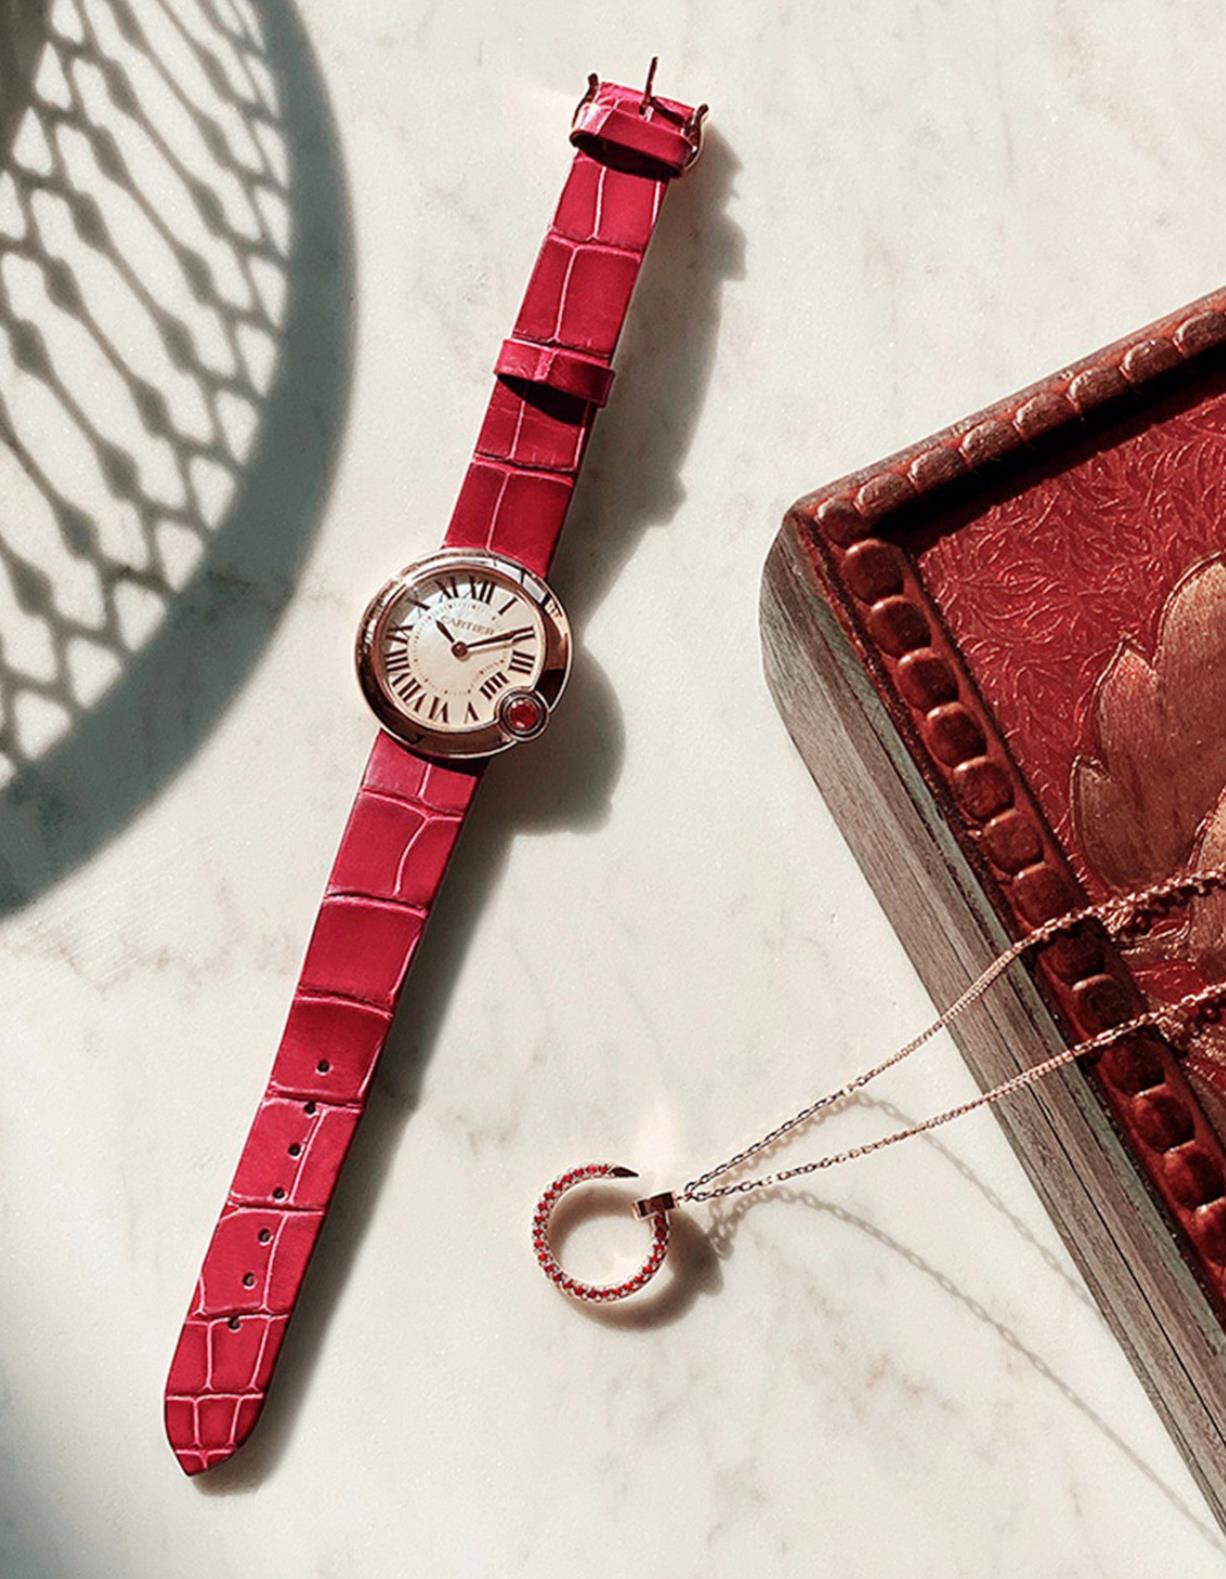 The 18k rose gold fake watch has a red strap.